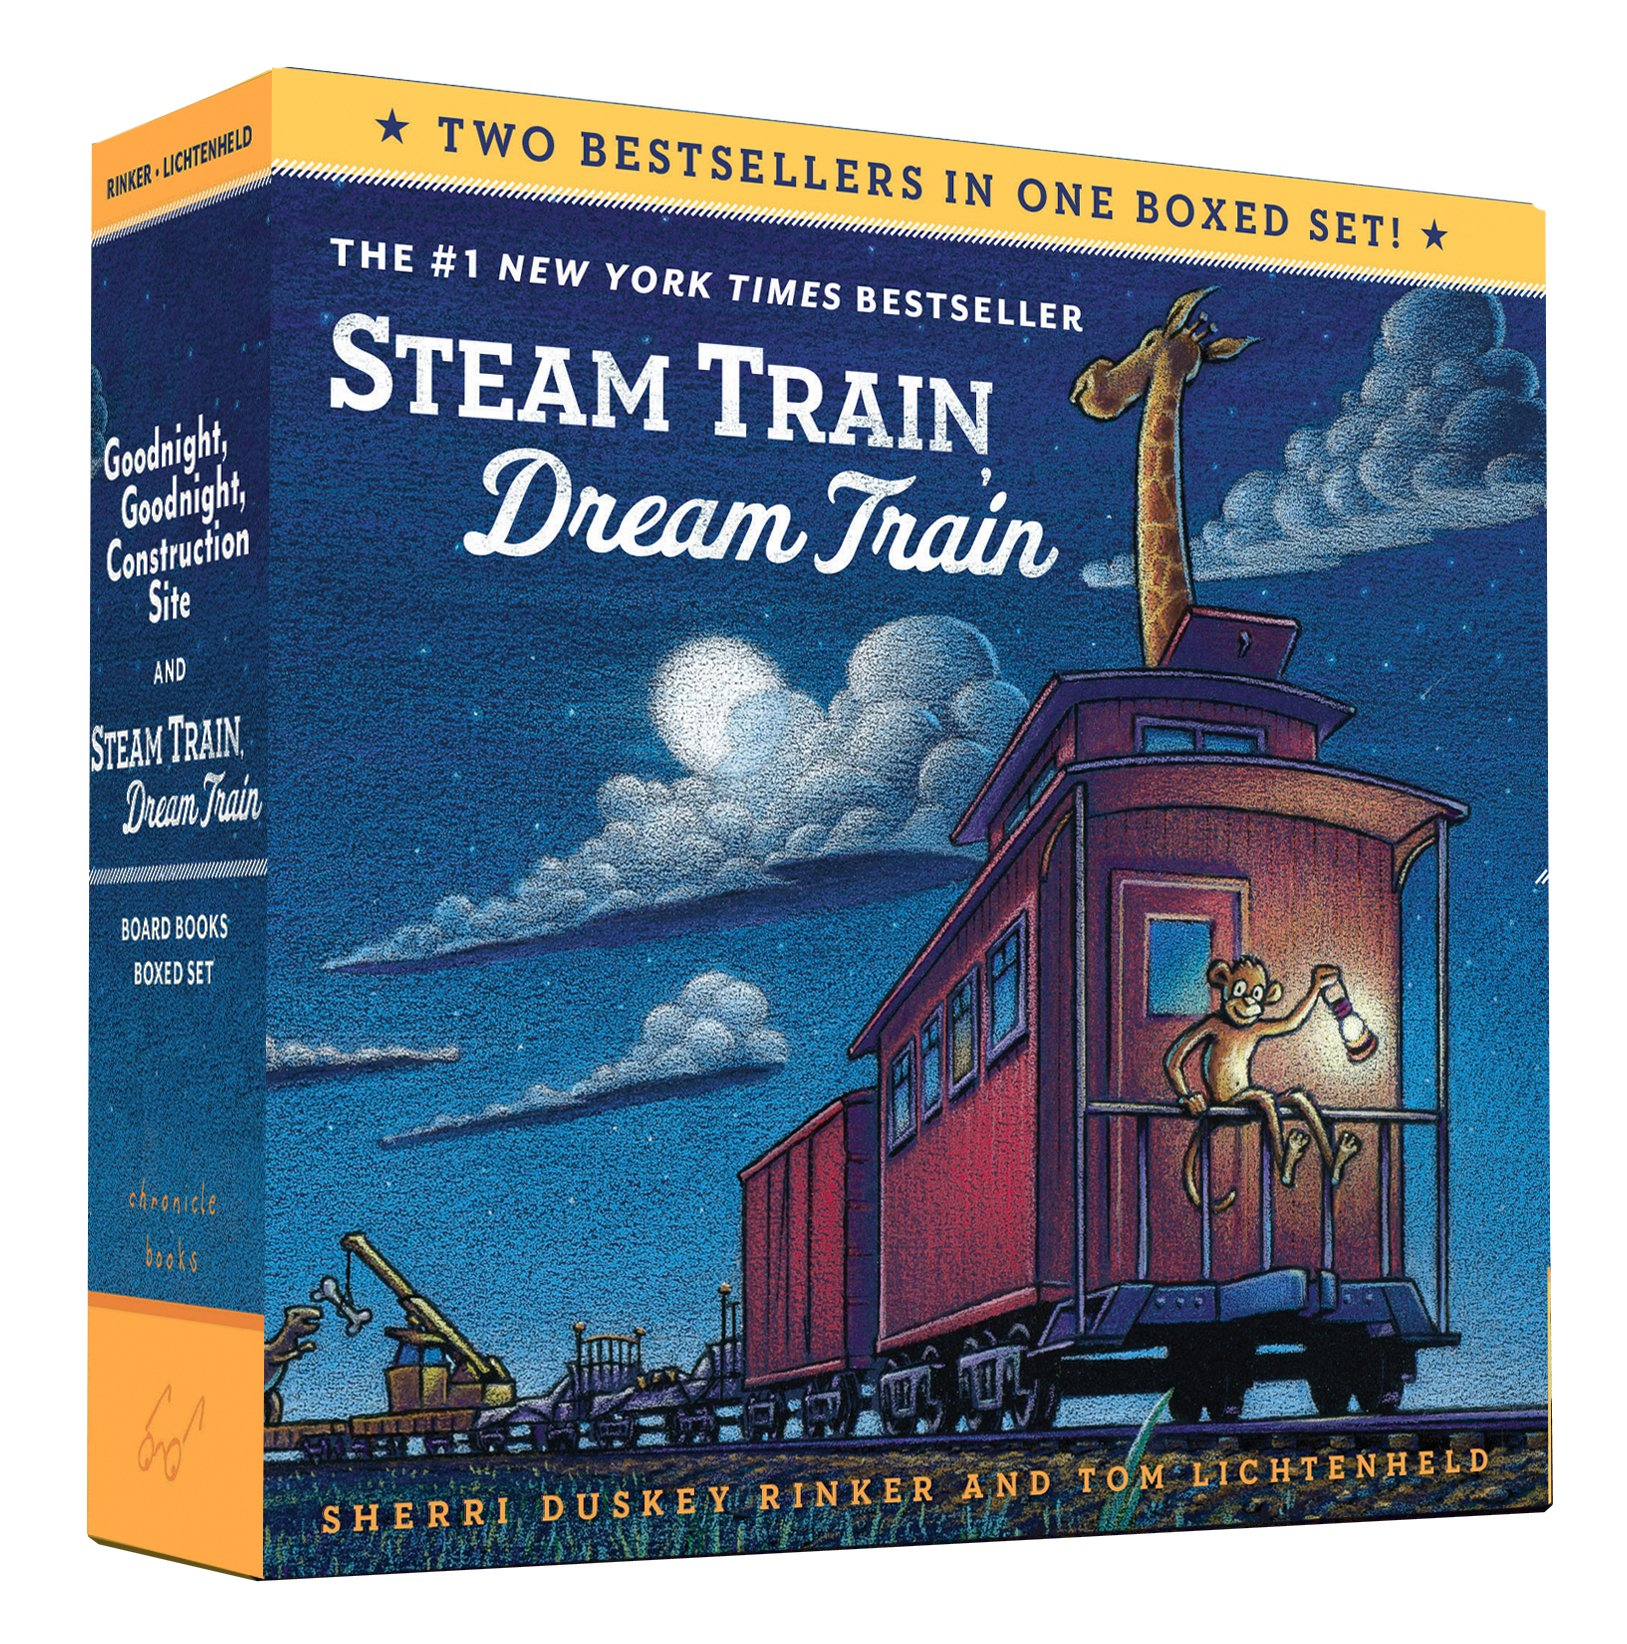 Image for Goodnight, Goodnight, Construction Site and Steam Train, Dream Train Board Books Boxed Set (Board Books for Babies, Preschool Books, Picture Books for Toddlers)